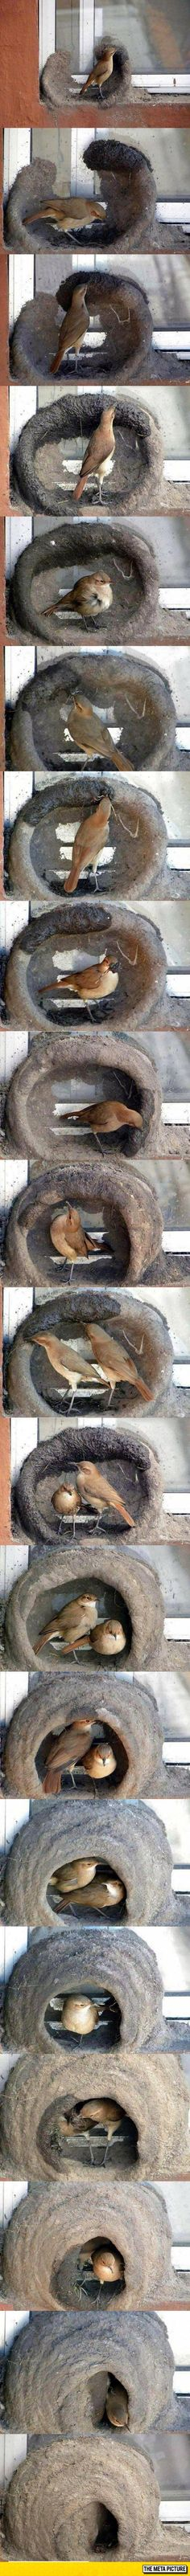 Birds Building A Nest. Can You Guest How Long They Take?